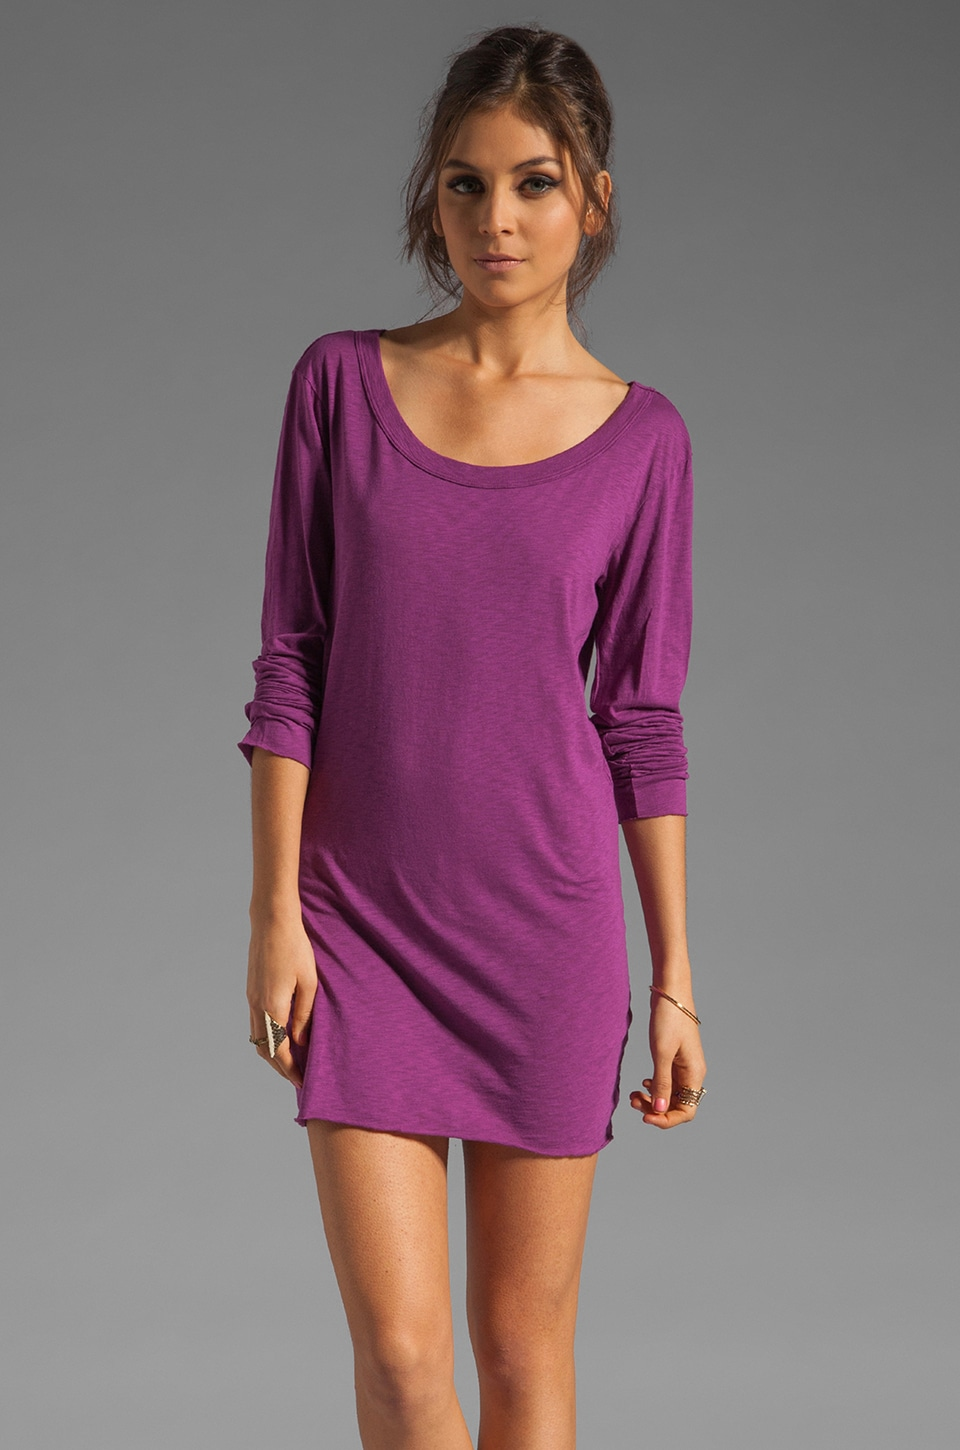 Michael Stars Long Sleeve Scoop Tunic in Huckleberry